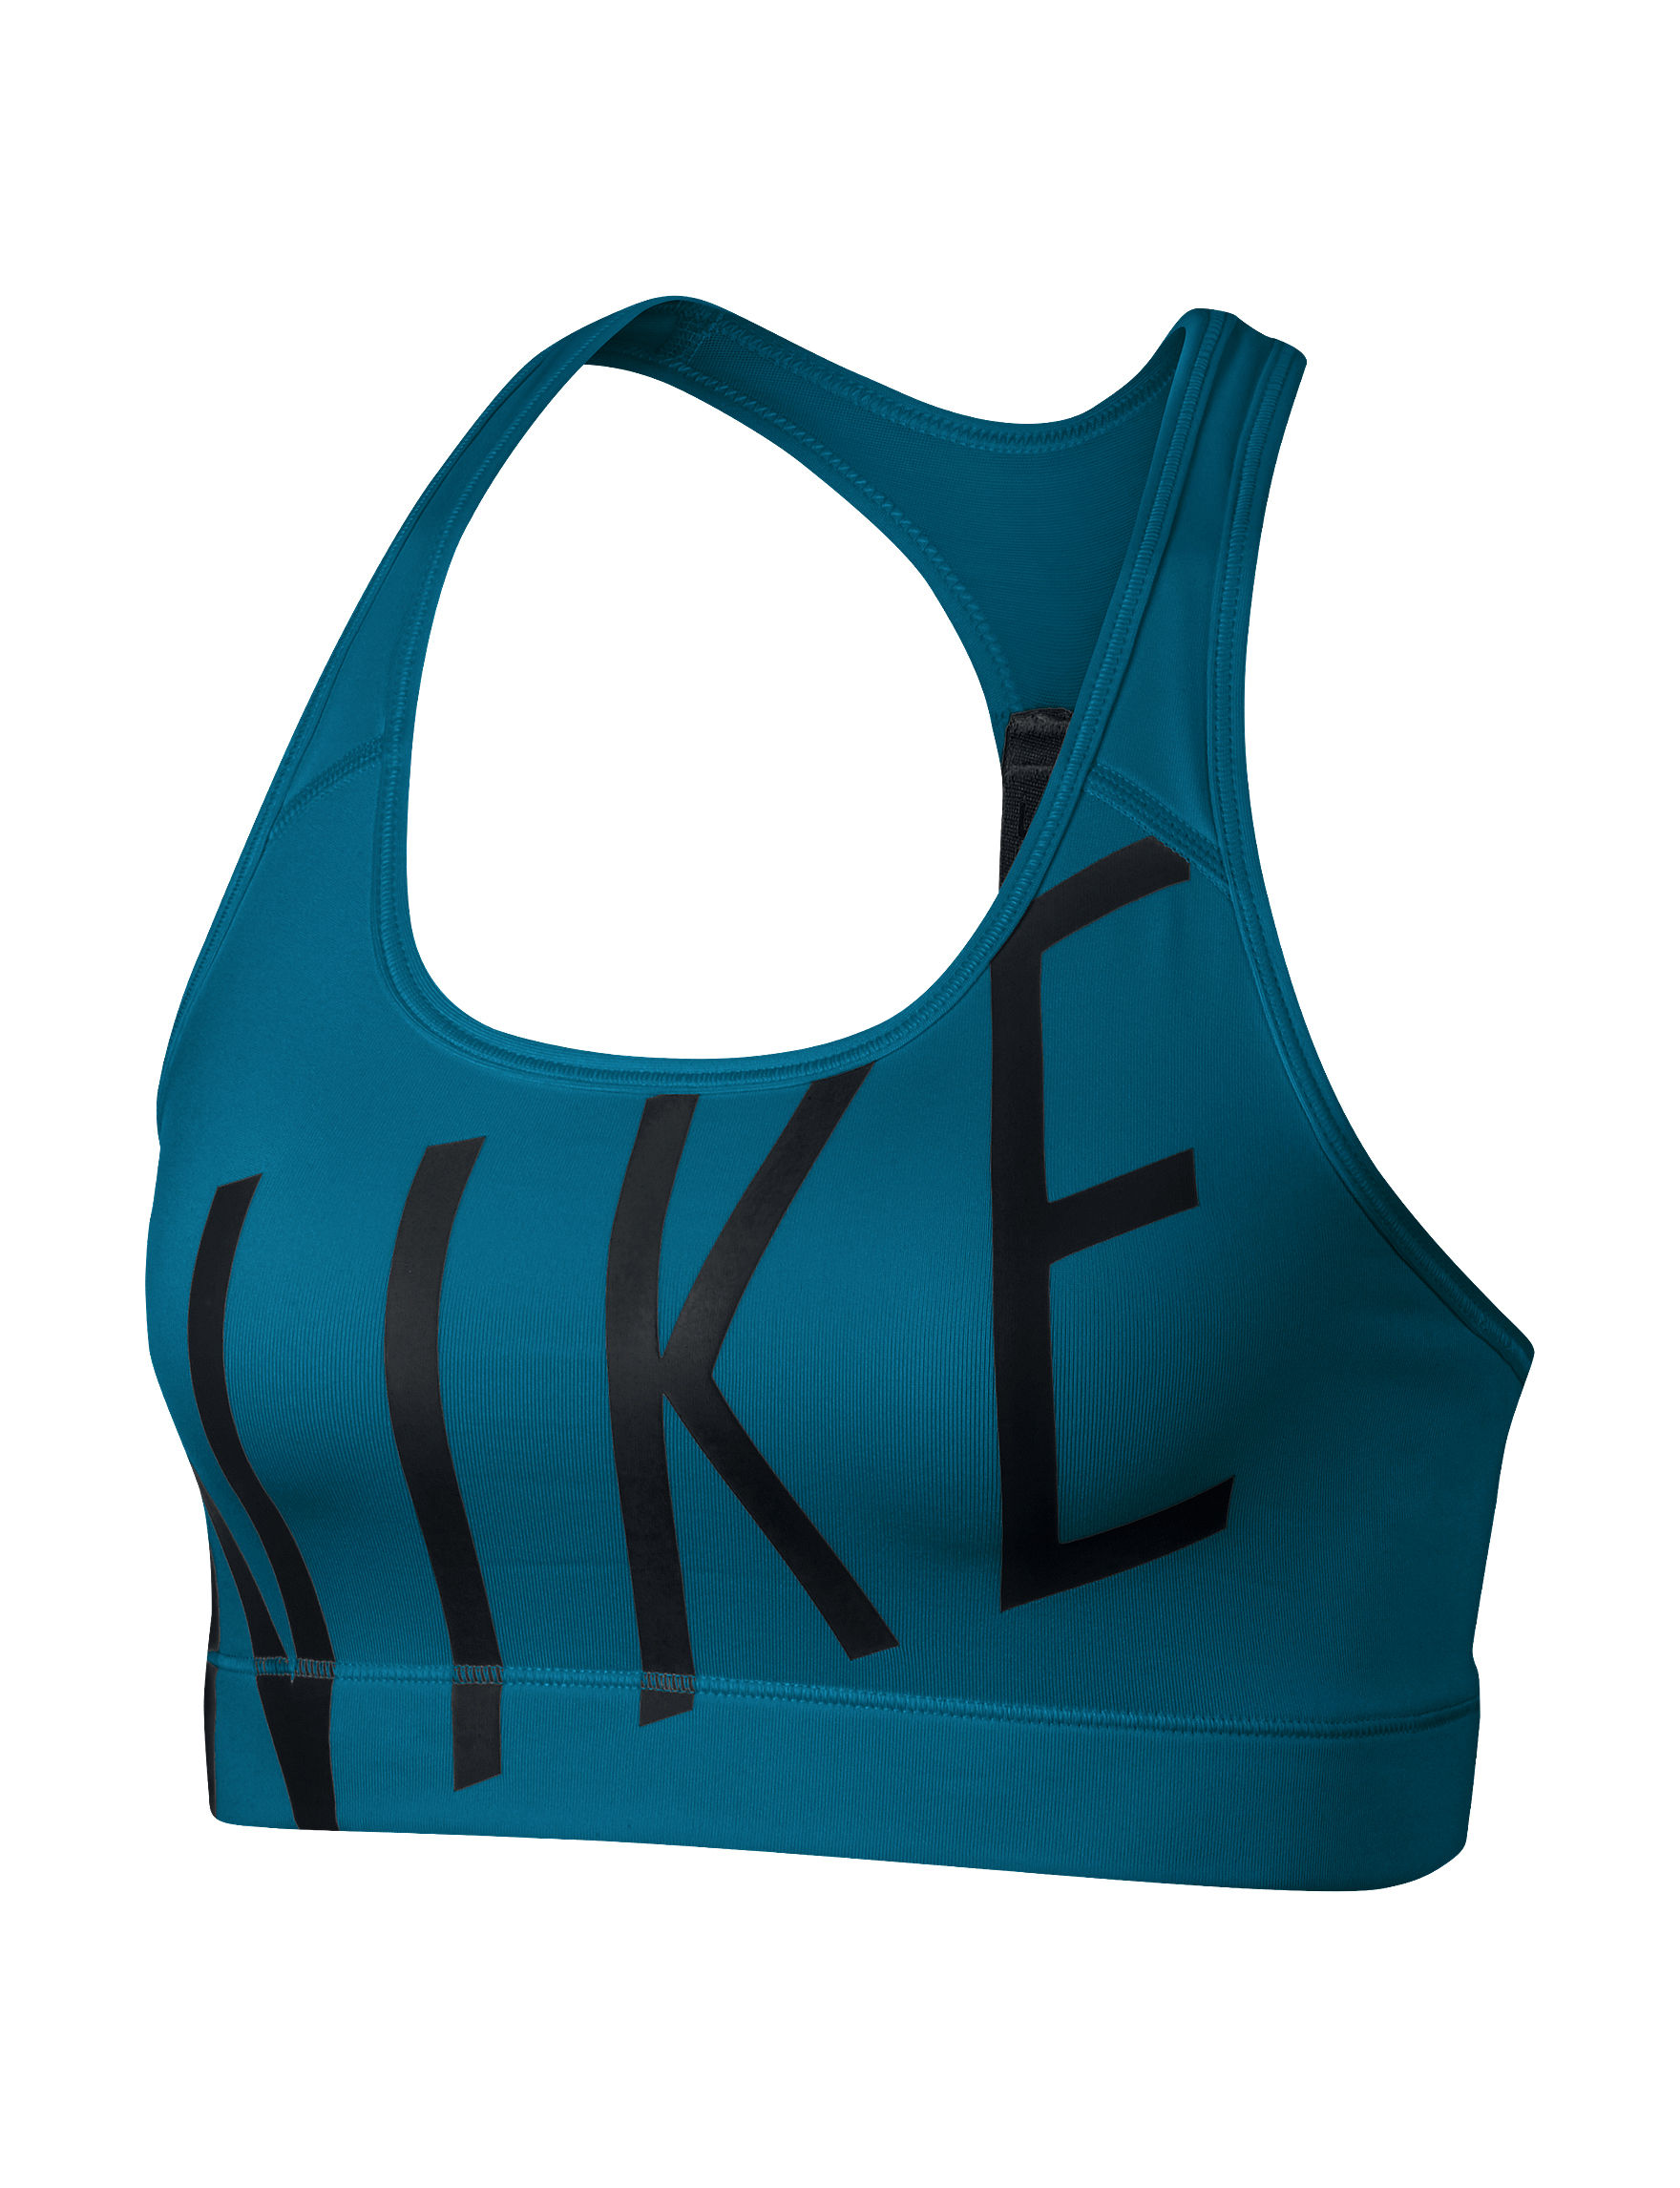 Nike Blue Bras Sports Bra